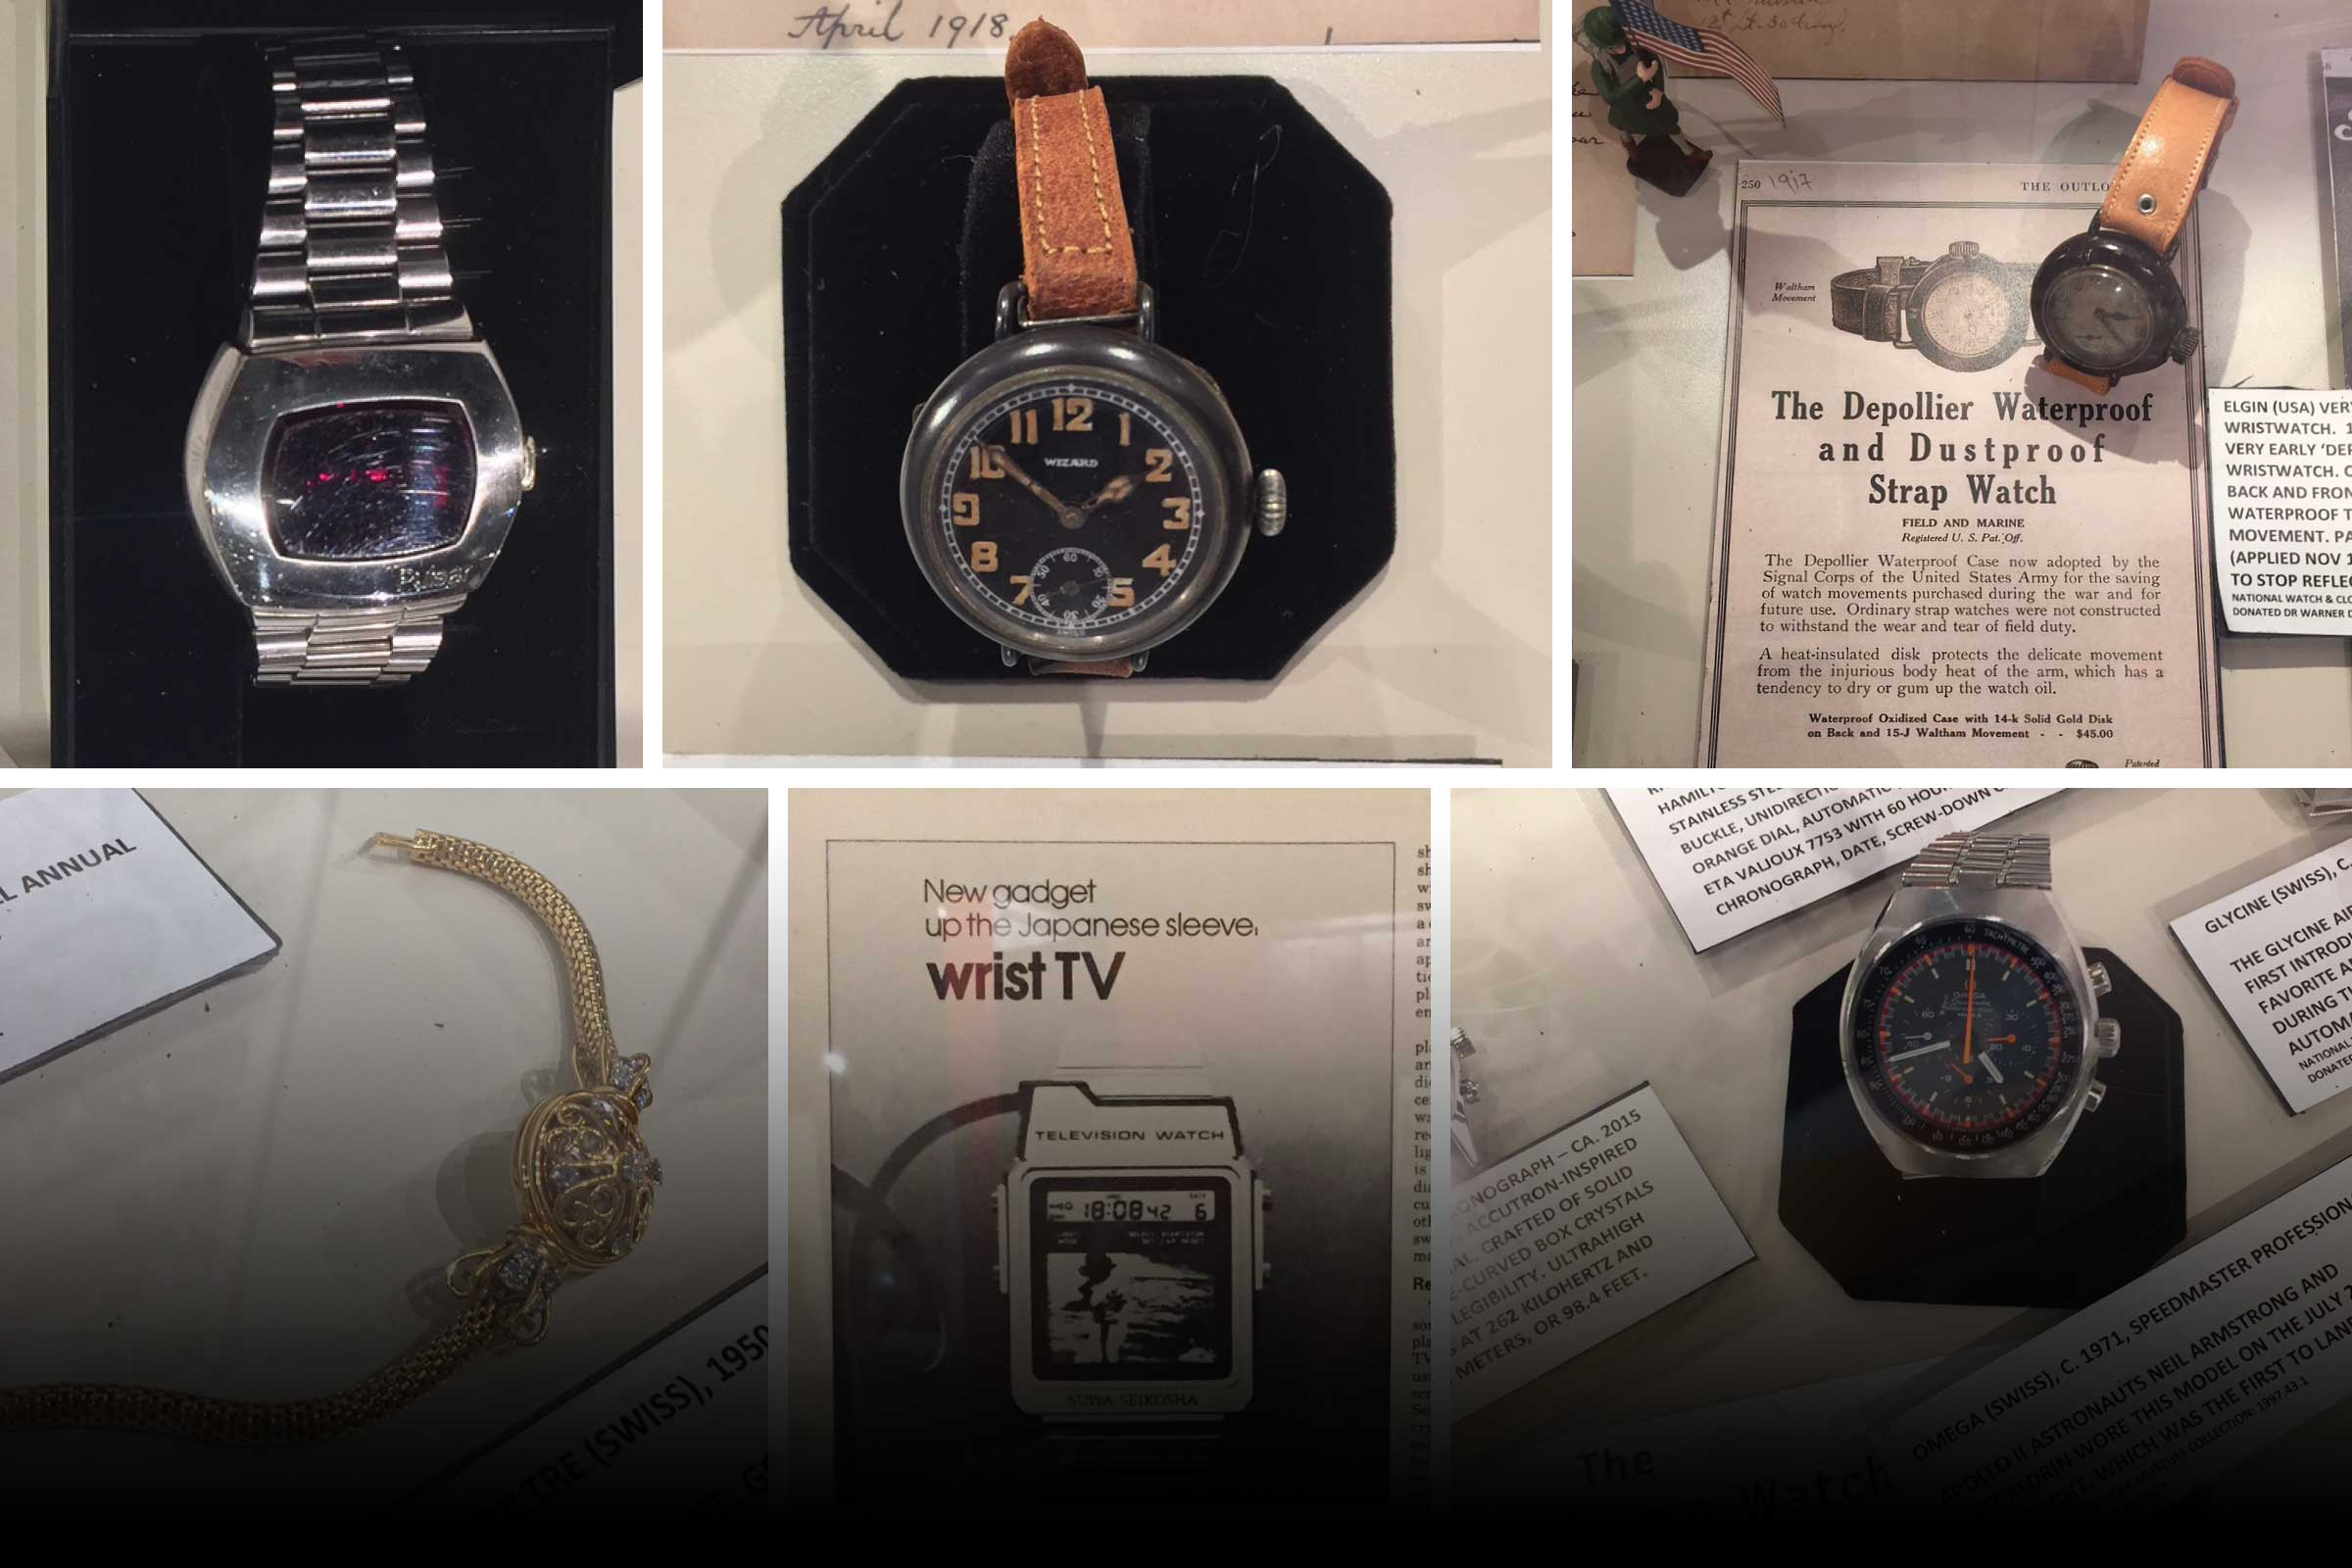 Collage of 5 watches and an advertisement